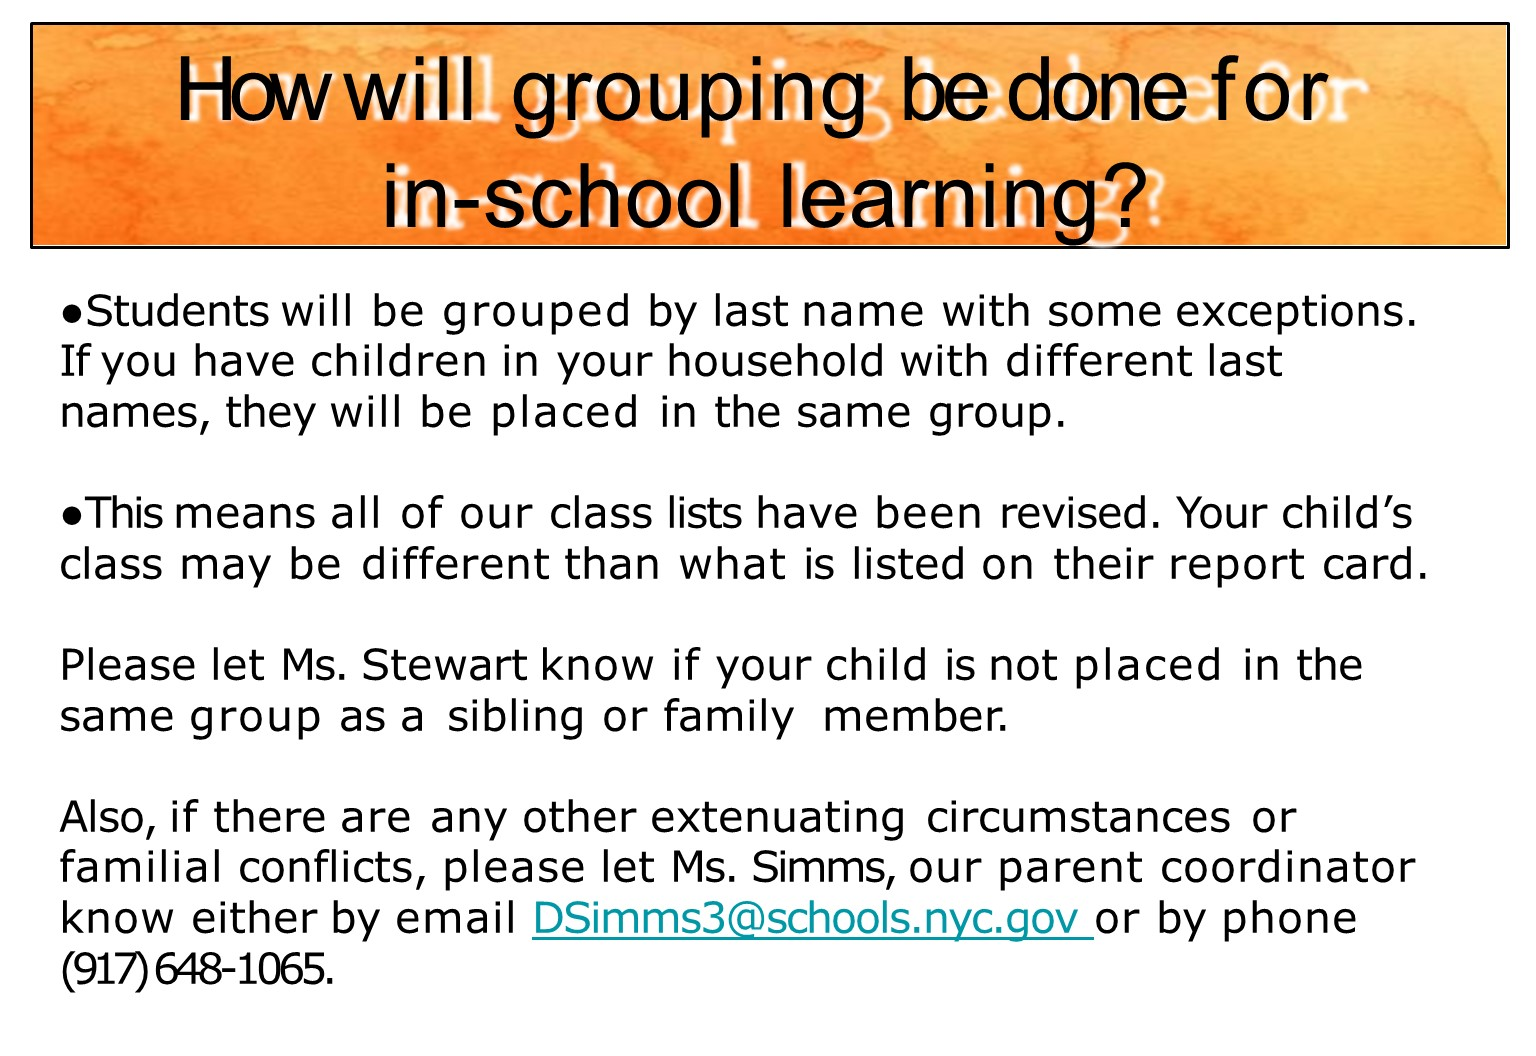 Student grouping for in school learning